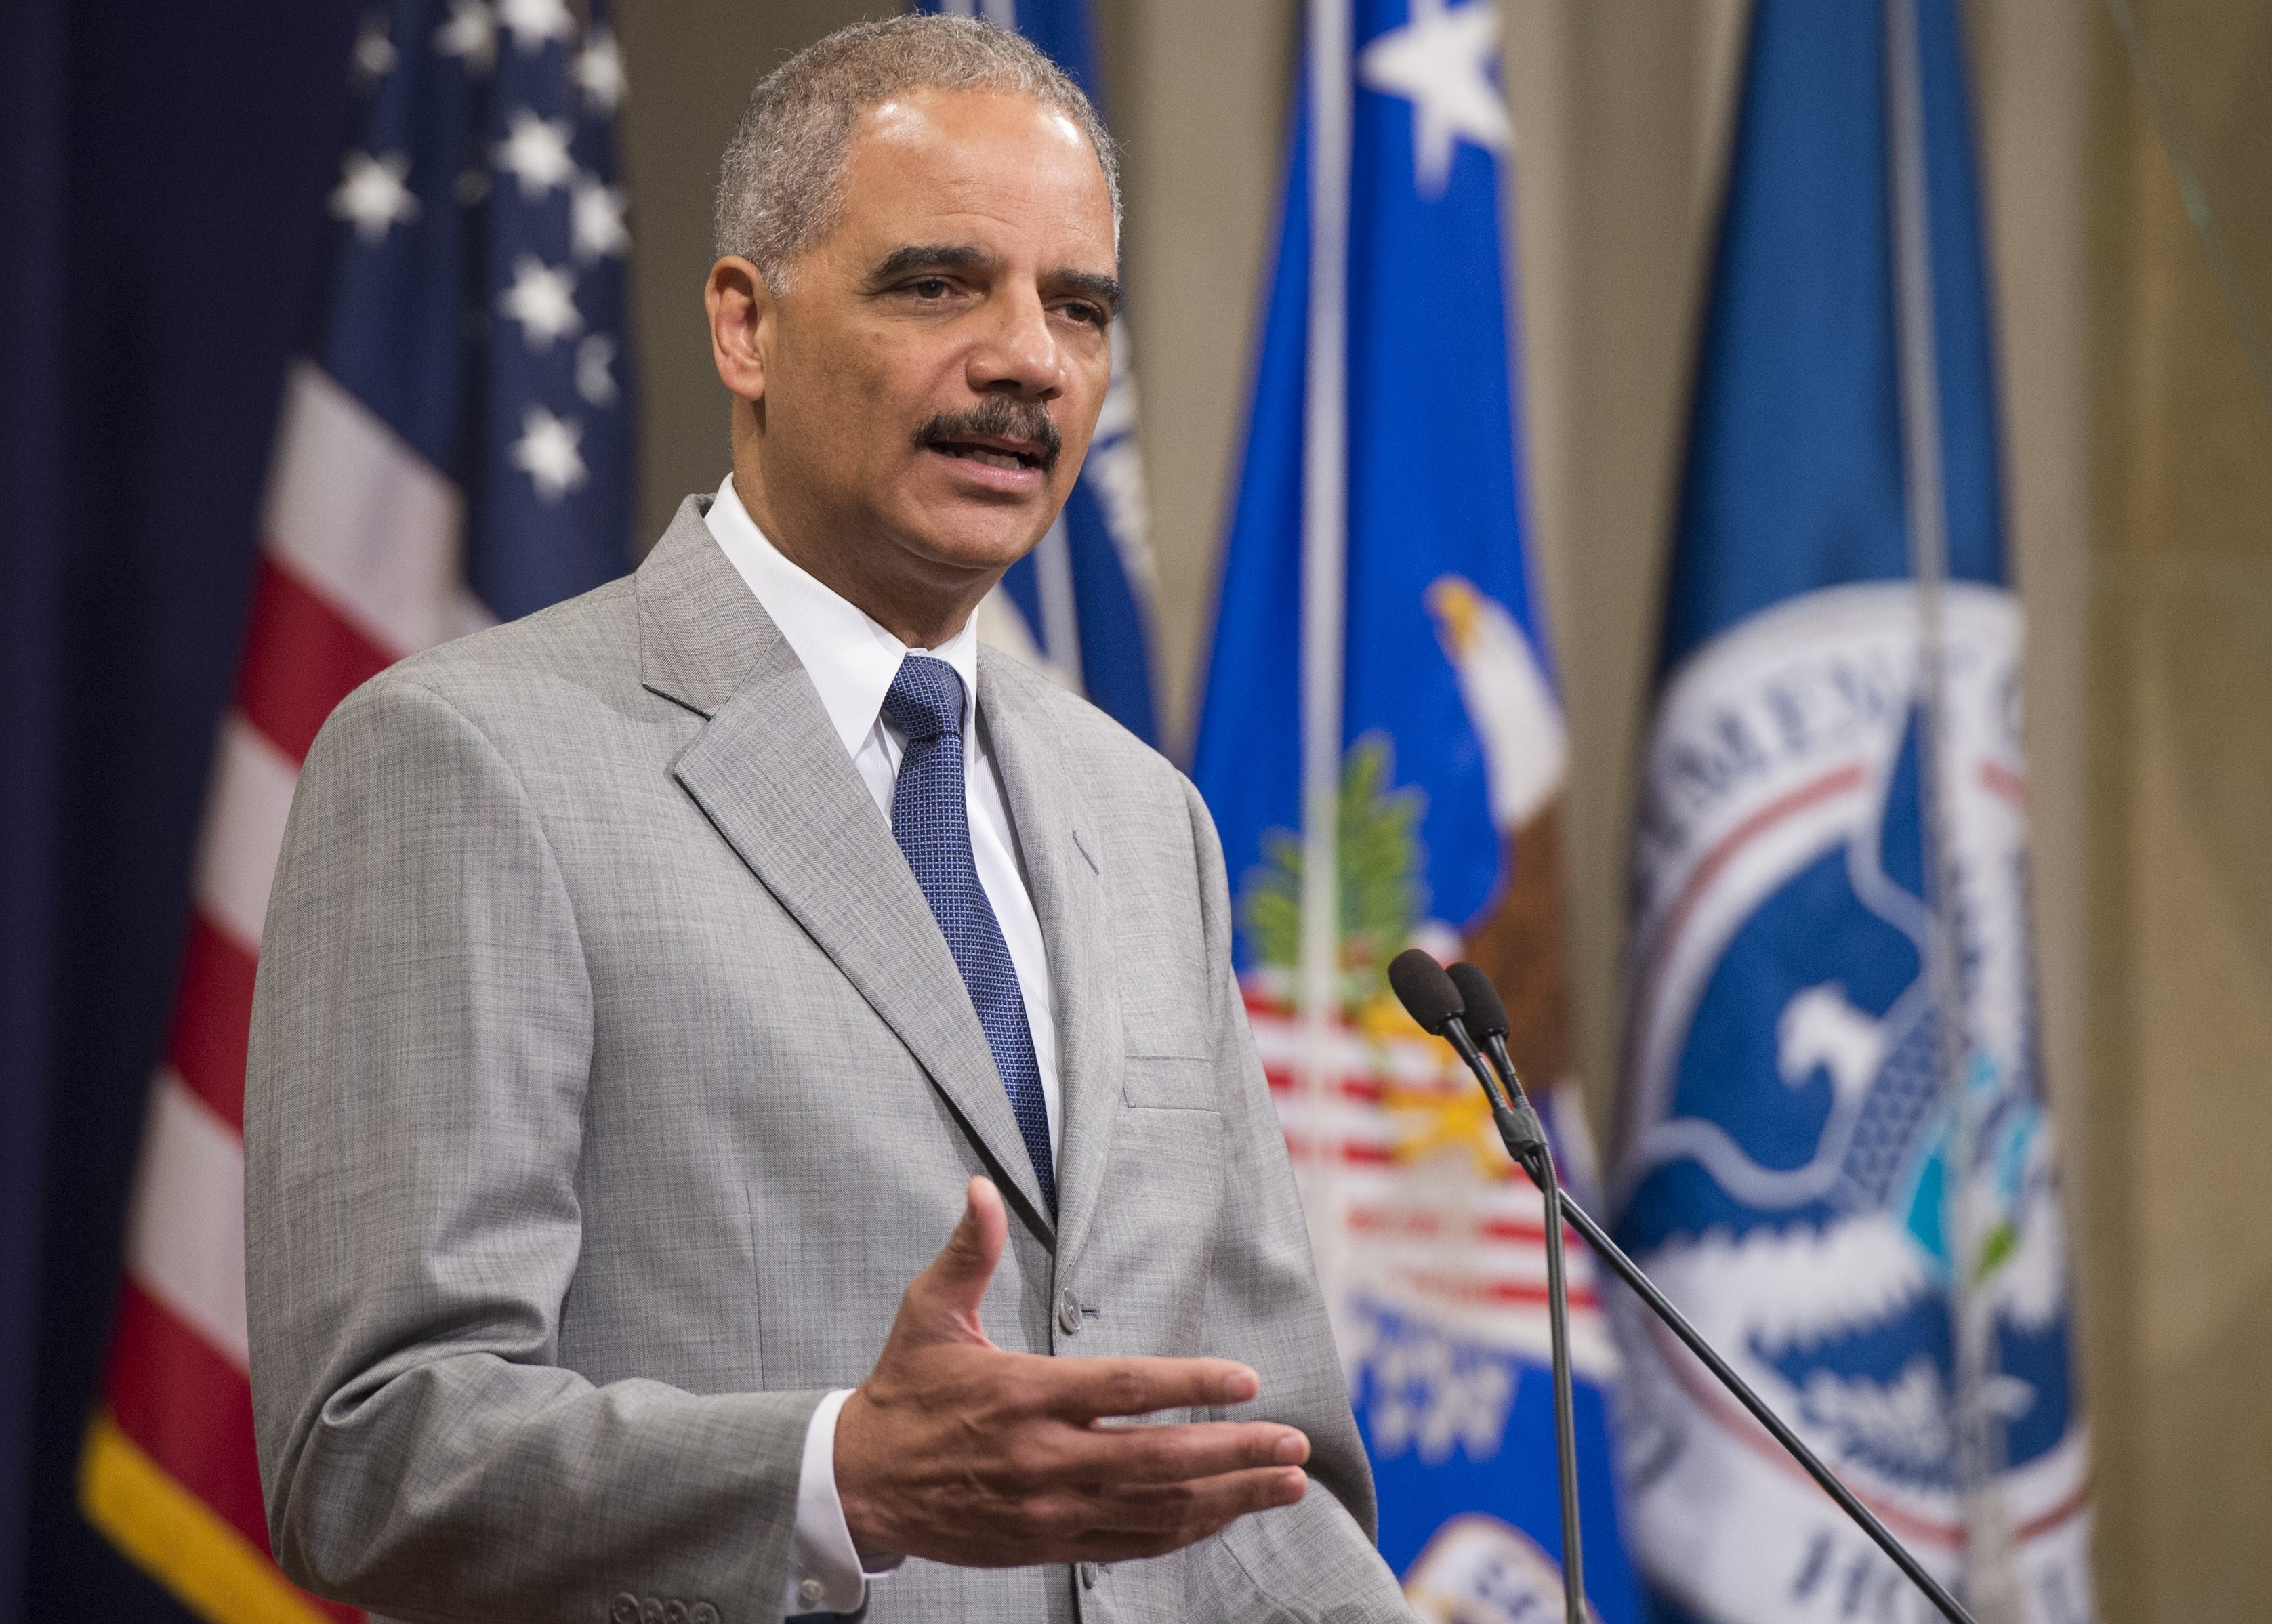 US Attorney General Eric Holder speaks during a Naturalization Ceremony at the Justice Department in Washington, DC, July 22, 2014.